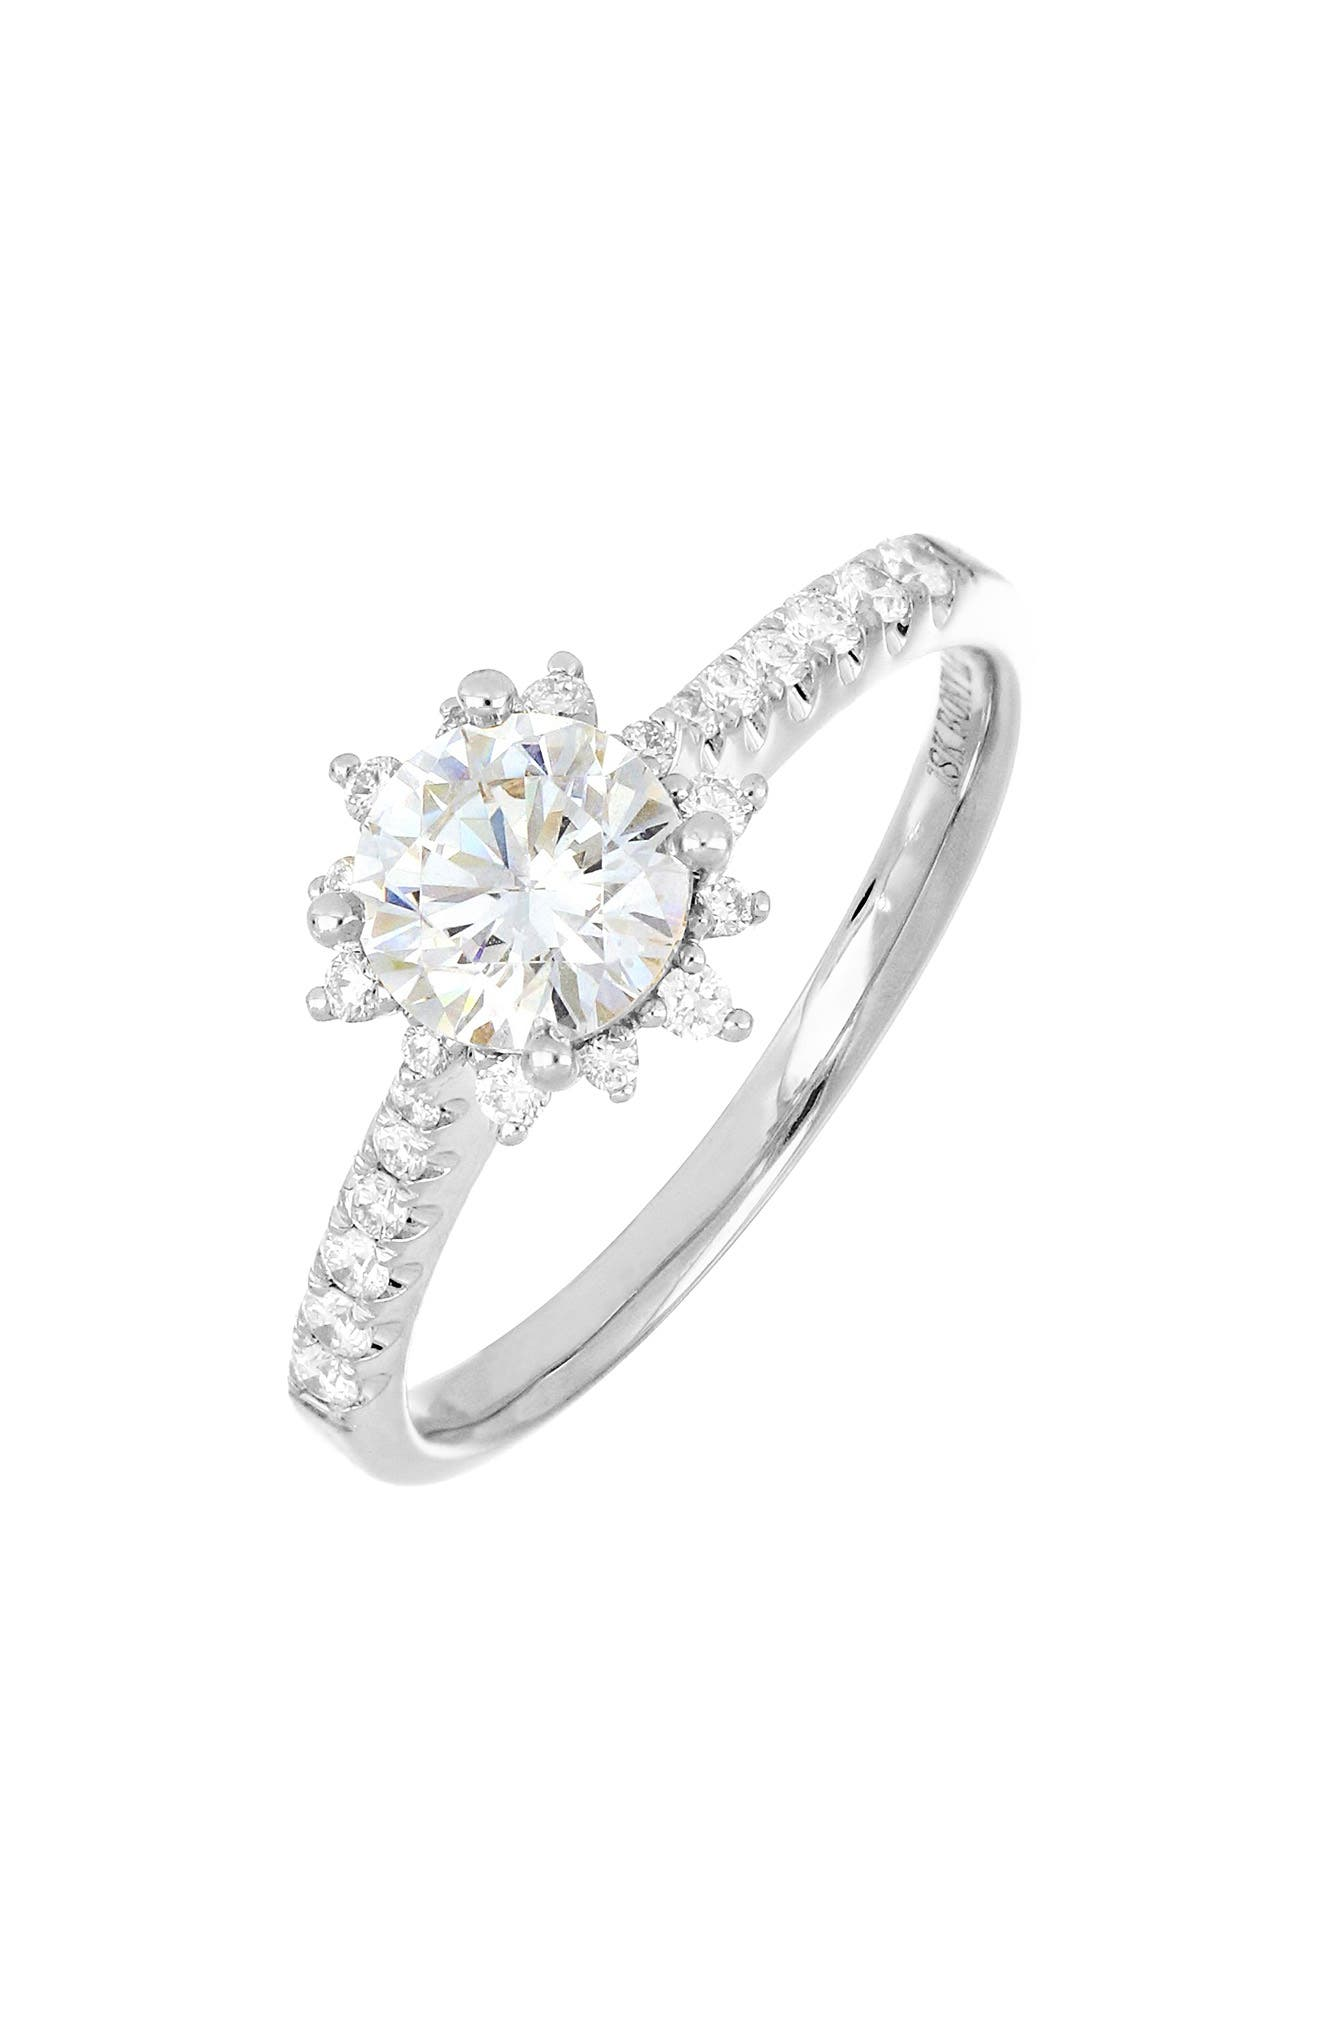 Pave-set diamonds-24 in all-add brilliant shine to the band and solitaire setting of a striking 18-karat-gold ring topped by a round cubic zirconia. Wear it as is, or you can buy and add the gem of your choice in place of the cubic zirconia after the proposal. Style Name: Bony Levy Pave Diamond & Cubic Zirconia Vintage Solitaire Engagement Ring (Nordstrom Exclusive). Style Number: 6091370. Available in stores.